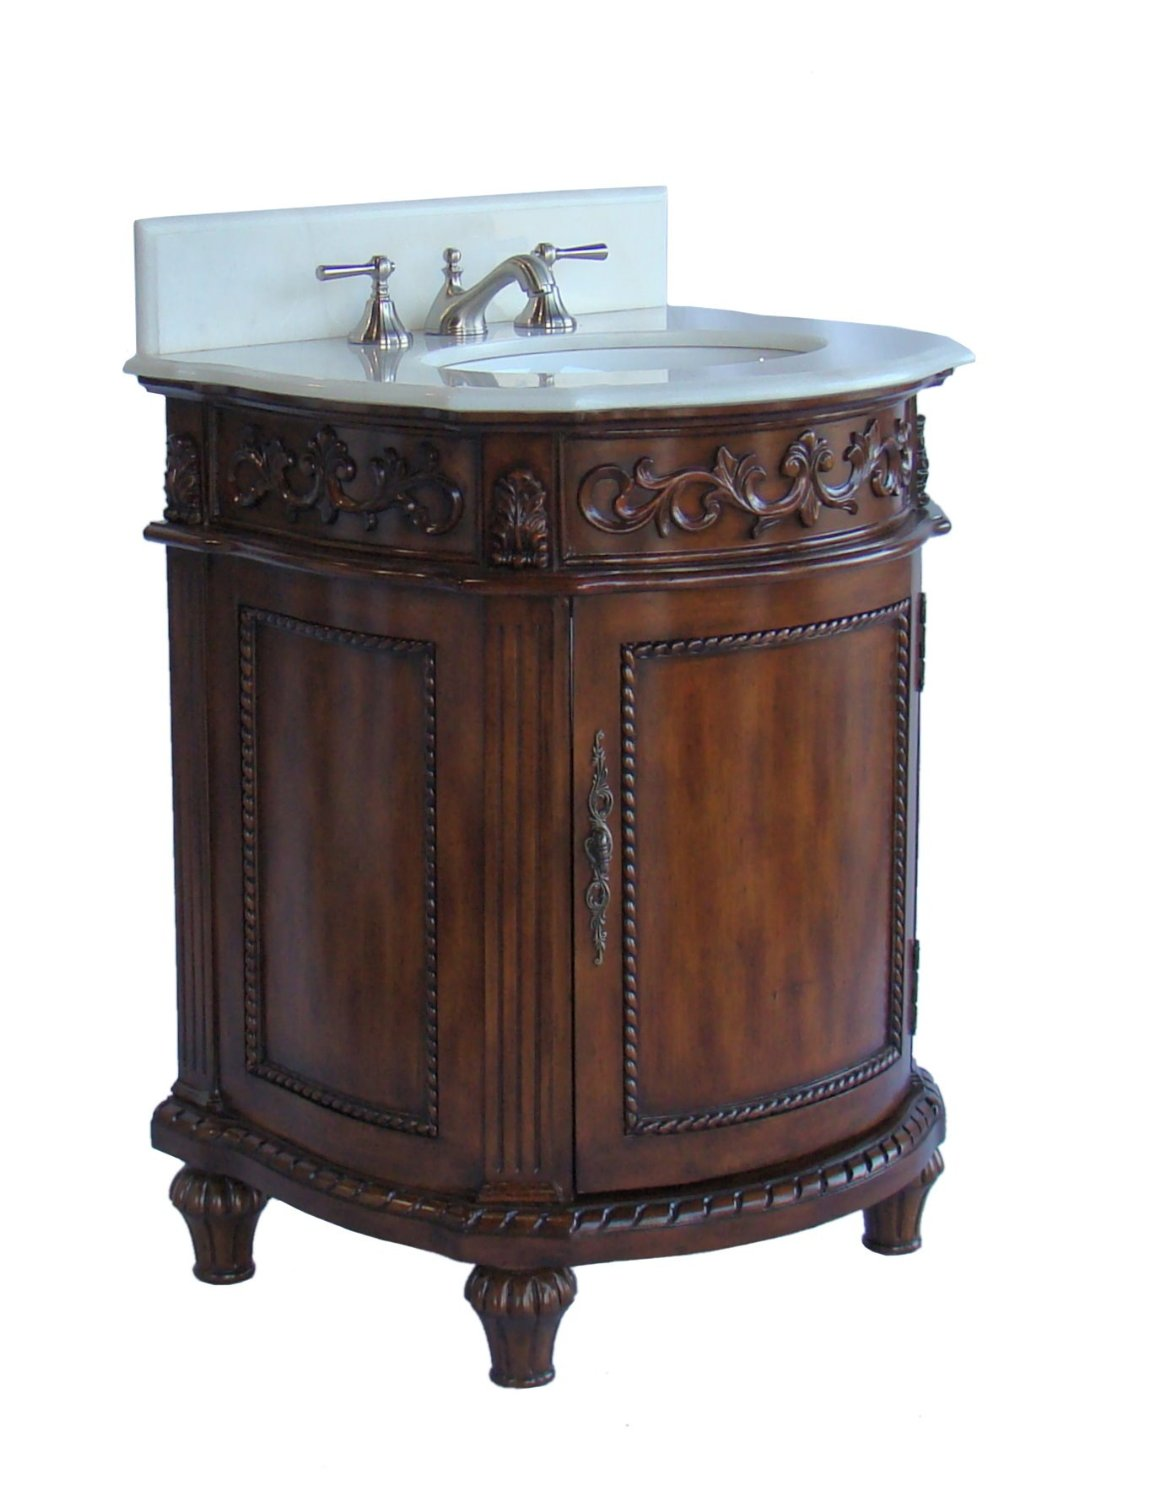 Petite Bathroom Vanity delina 26 inch petite bathroom vanity brown mahogany finish